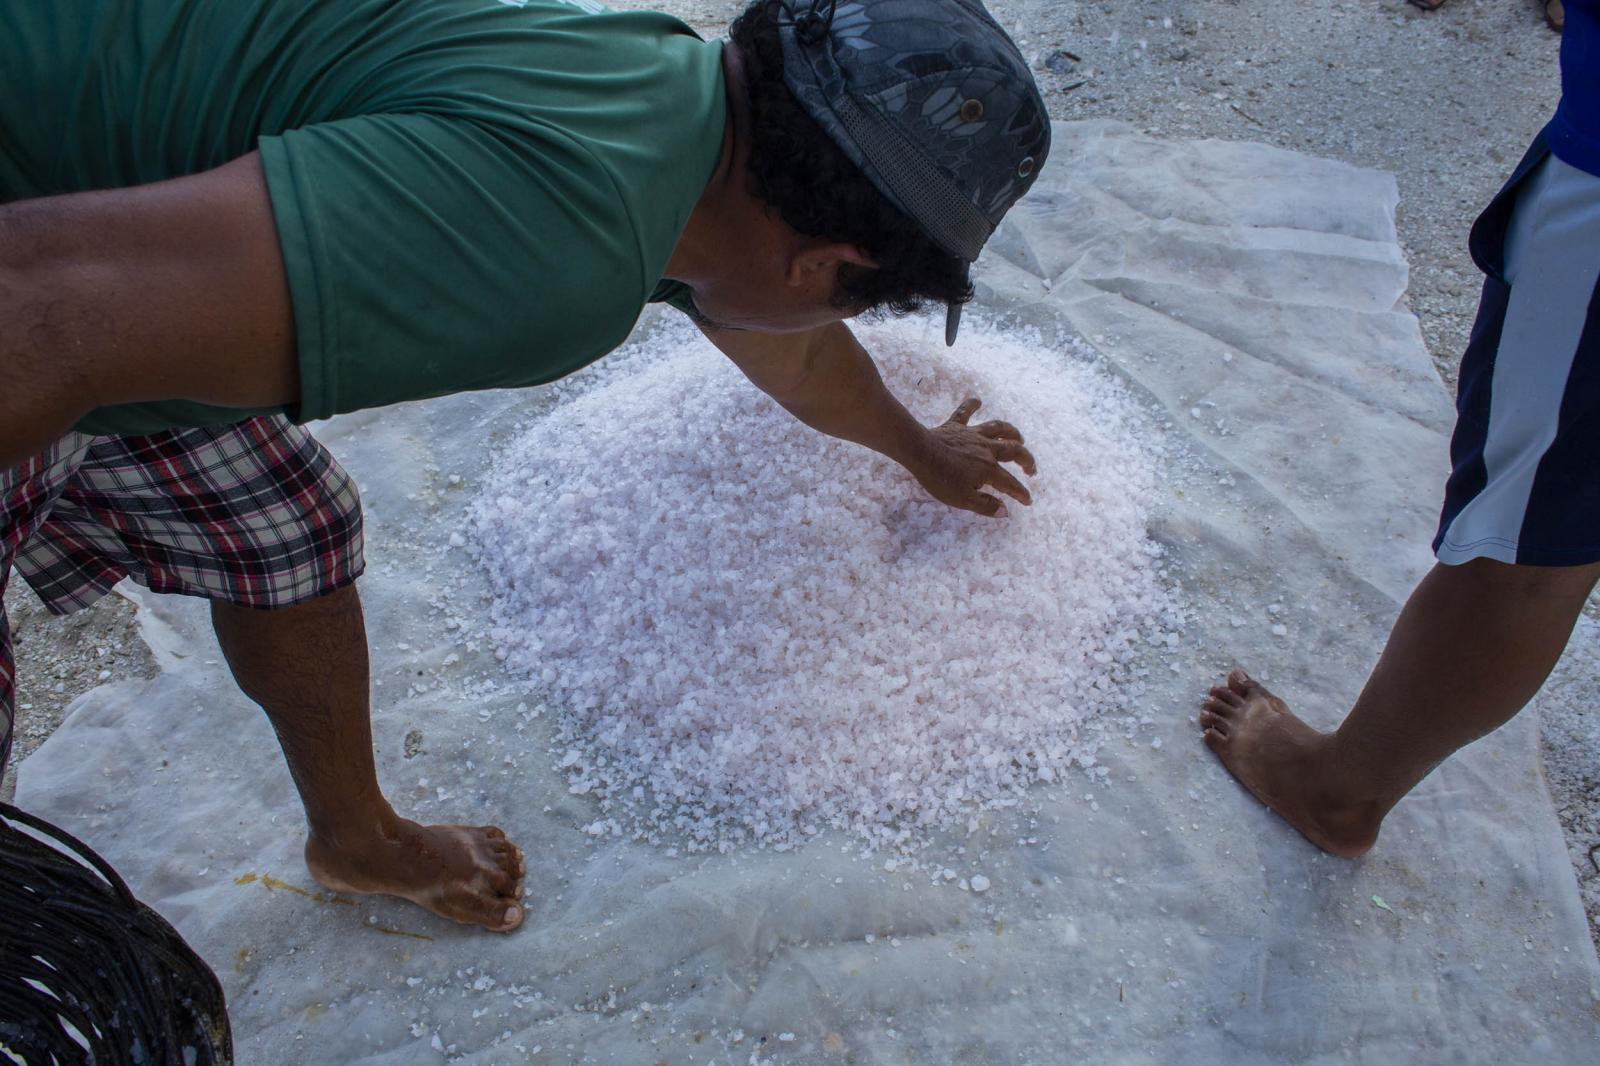 Workers during the salt harvest inside a pond in Xtampú, Yucatán state, Mexico, on Saturday, October 26, 2019. Photographer: Koral Carballo/Bloomberg